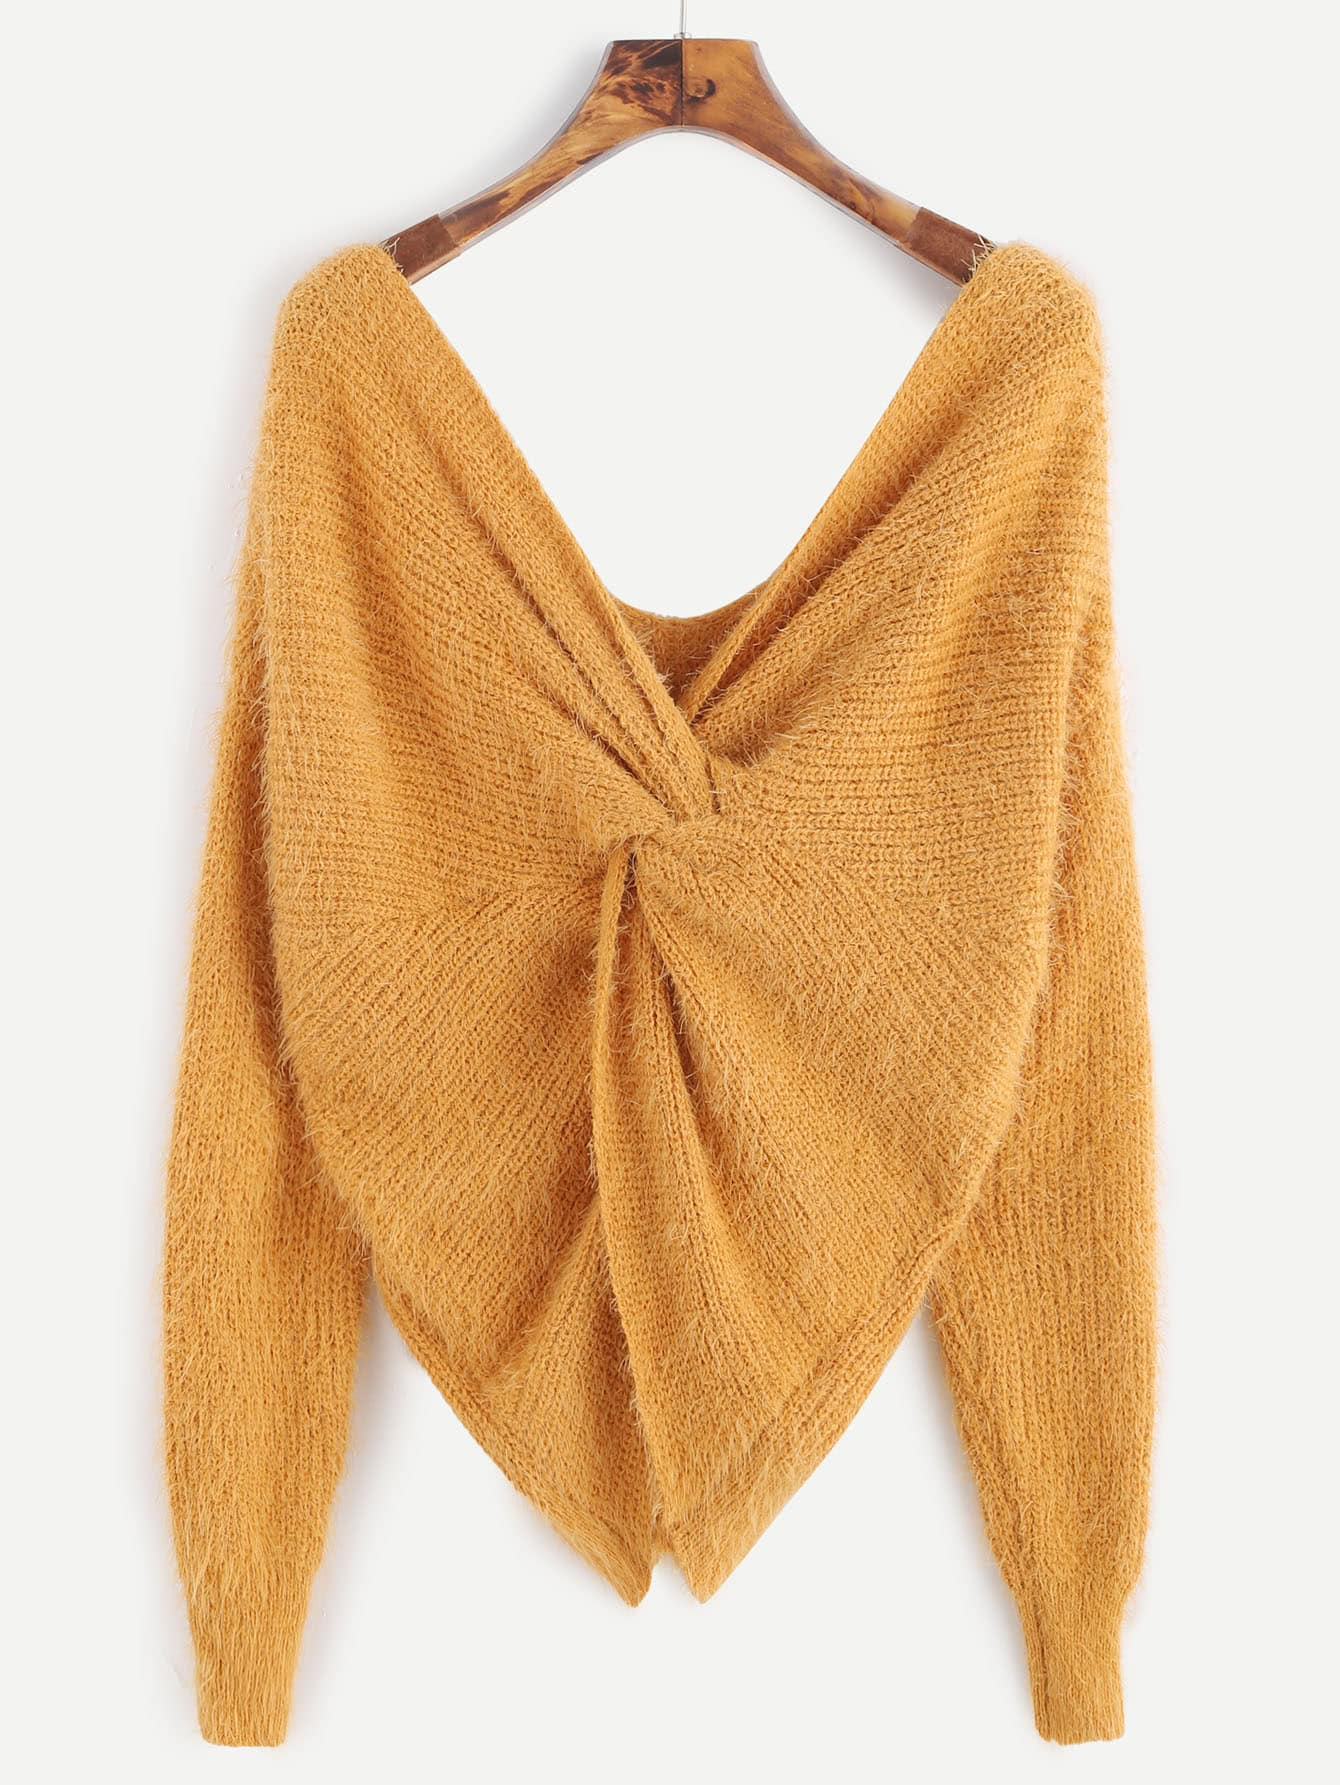 Yellow Double V Neck Knotted Back Fuzzy SweaterYellow Double V Neck Knotted Back Fuzzy Sweater<br><br>color: Yellow<br>size: one-size